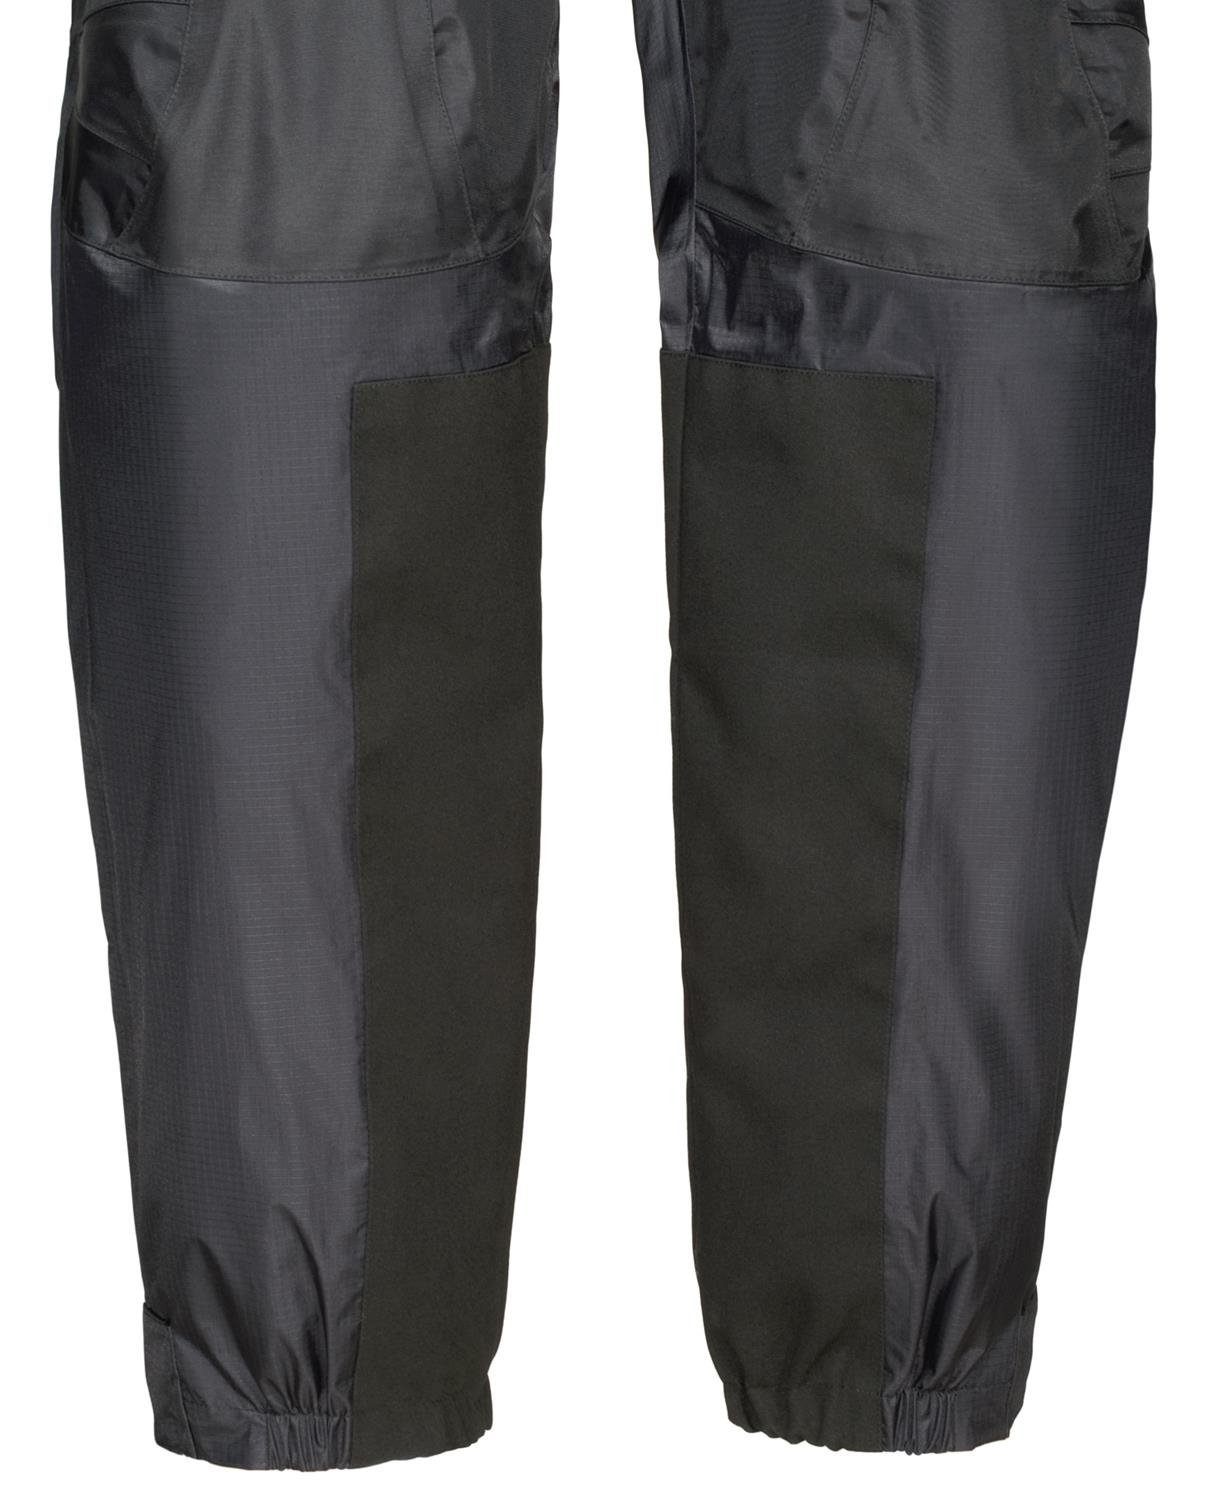 Tour Master Sentinel LE Nomex Rain Pants - Small/Black